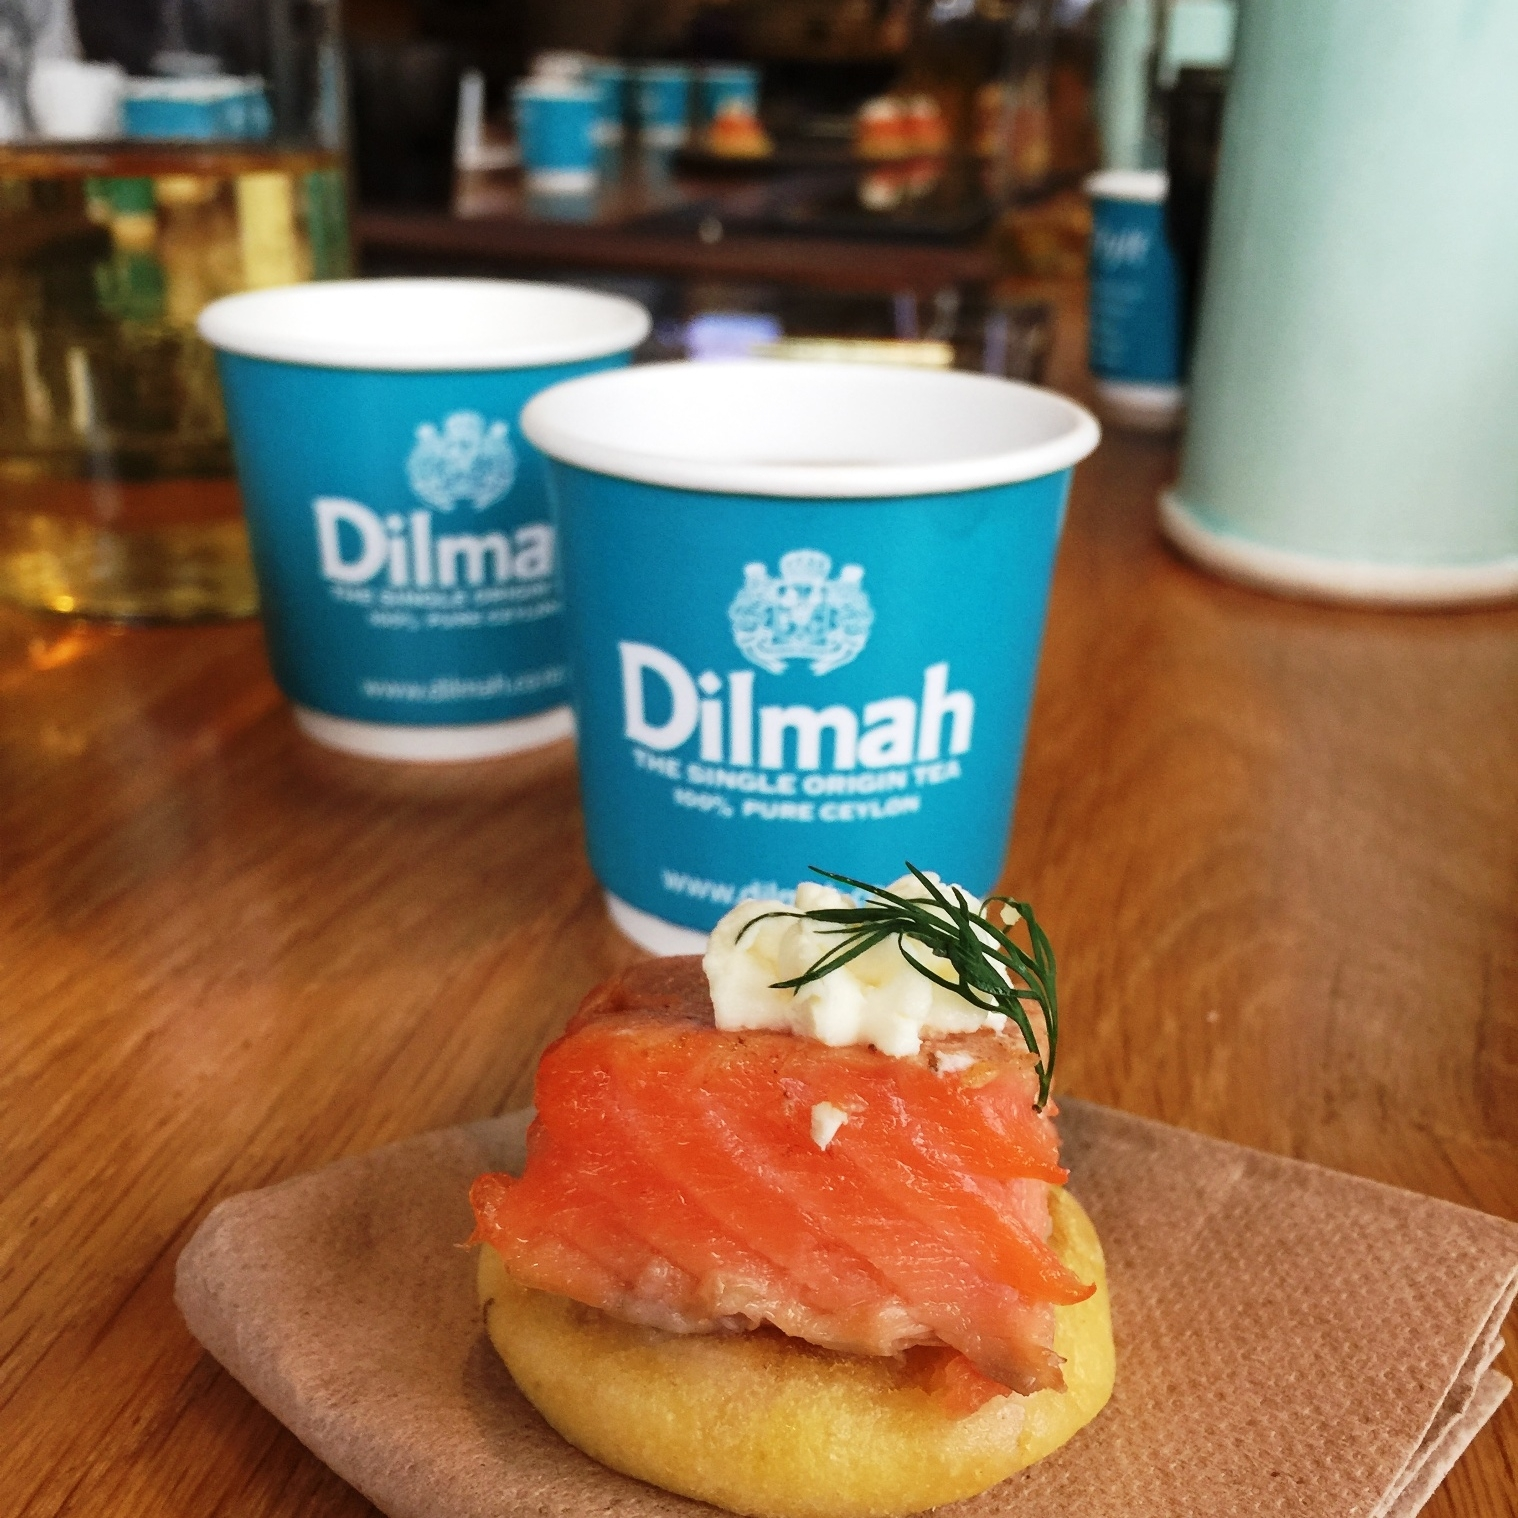 Earl grey tea cured salmon on blinis